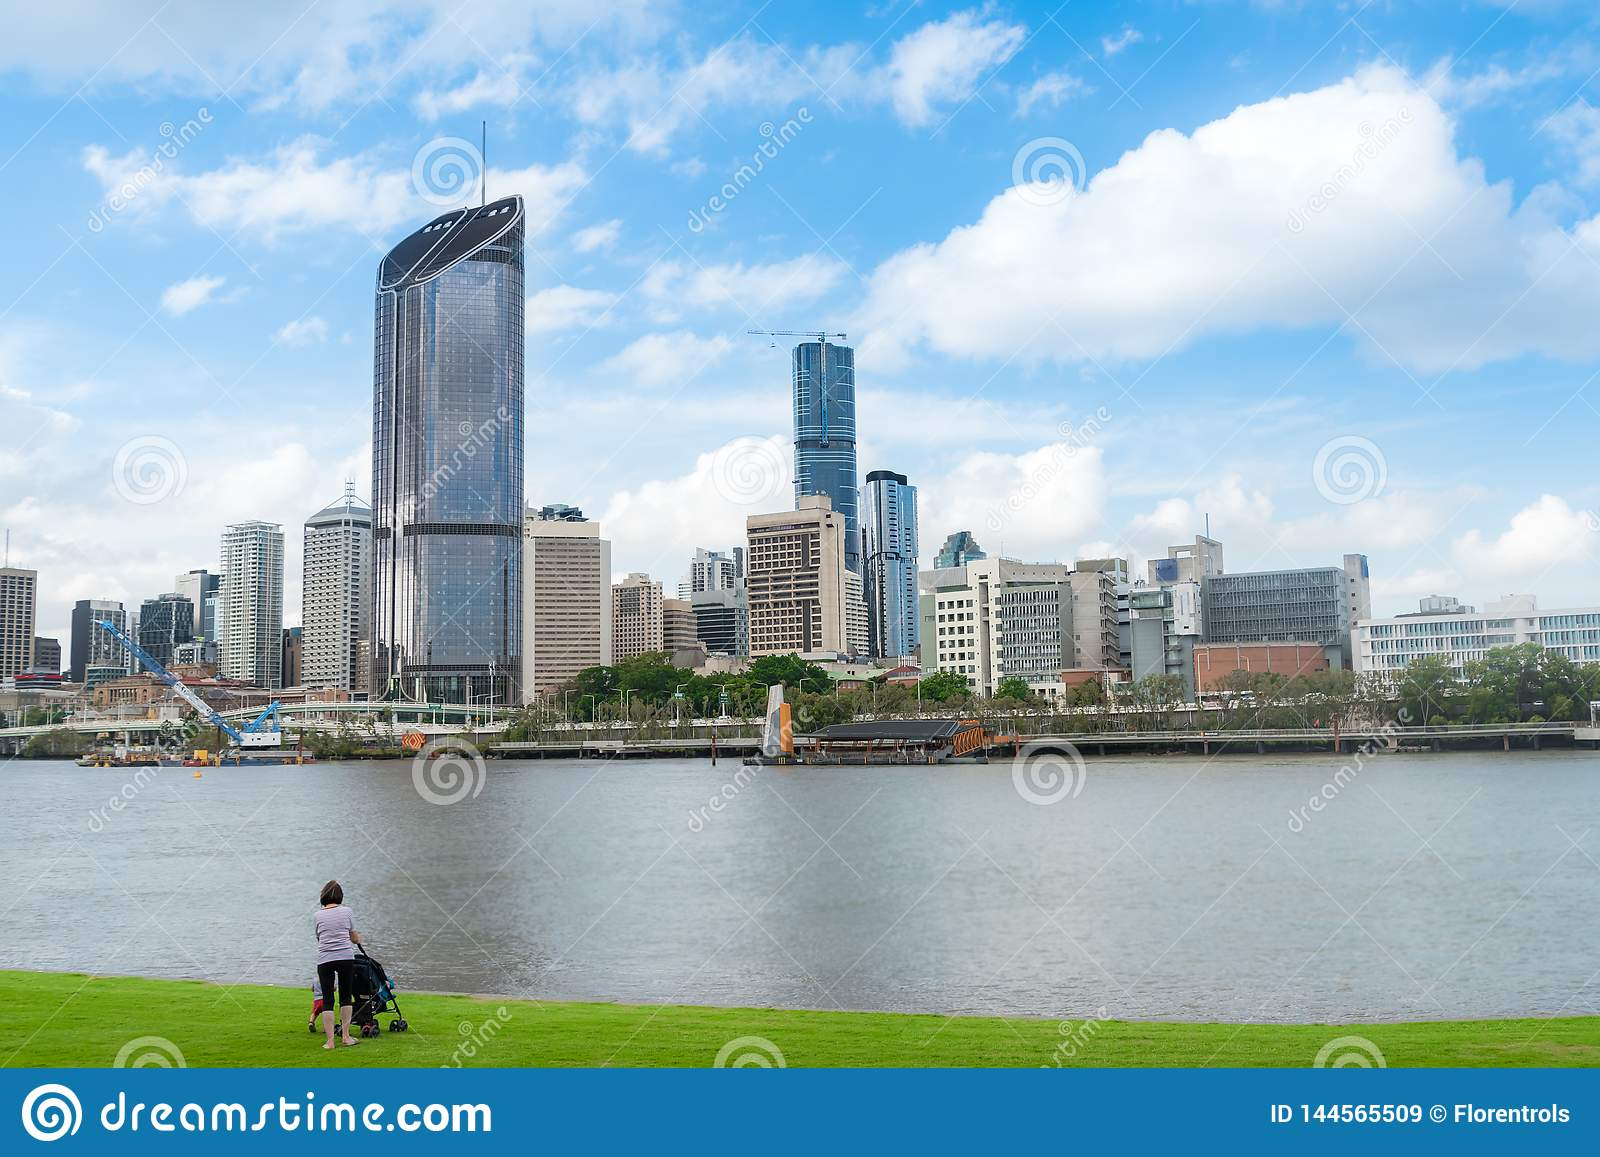 Person looking at the Brisbane city skyline